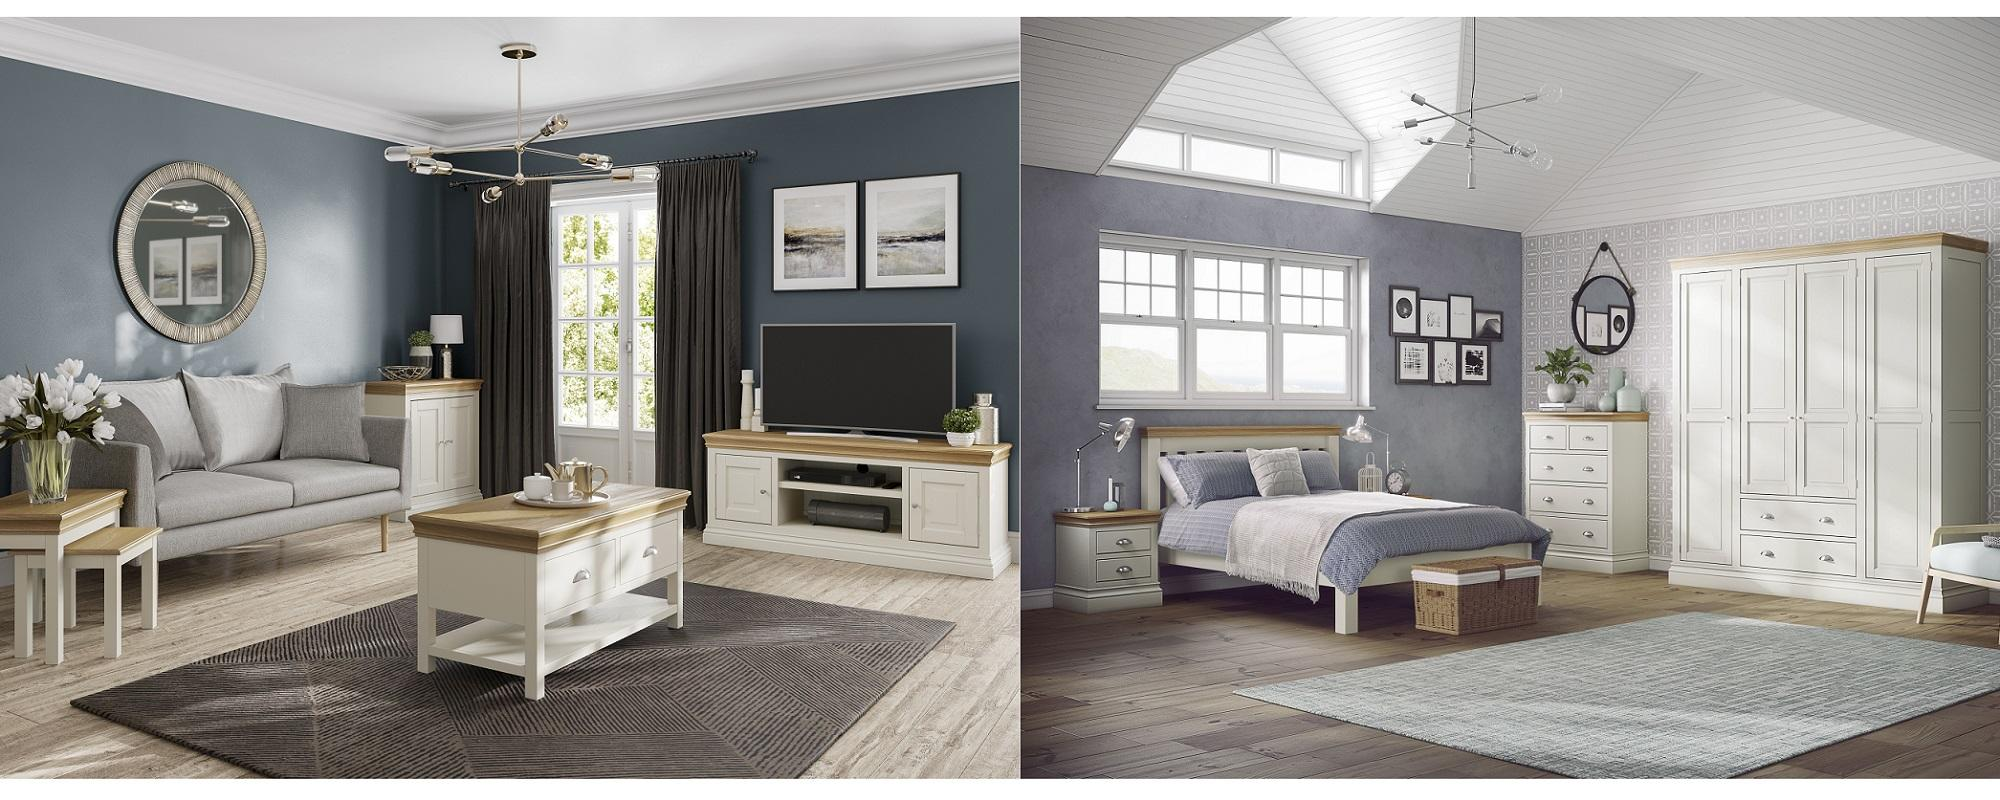 The New England Furniture Collection - Up to 20% off!